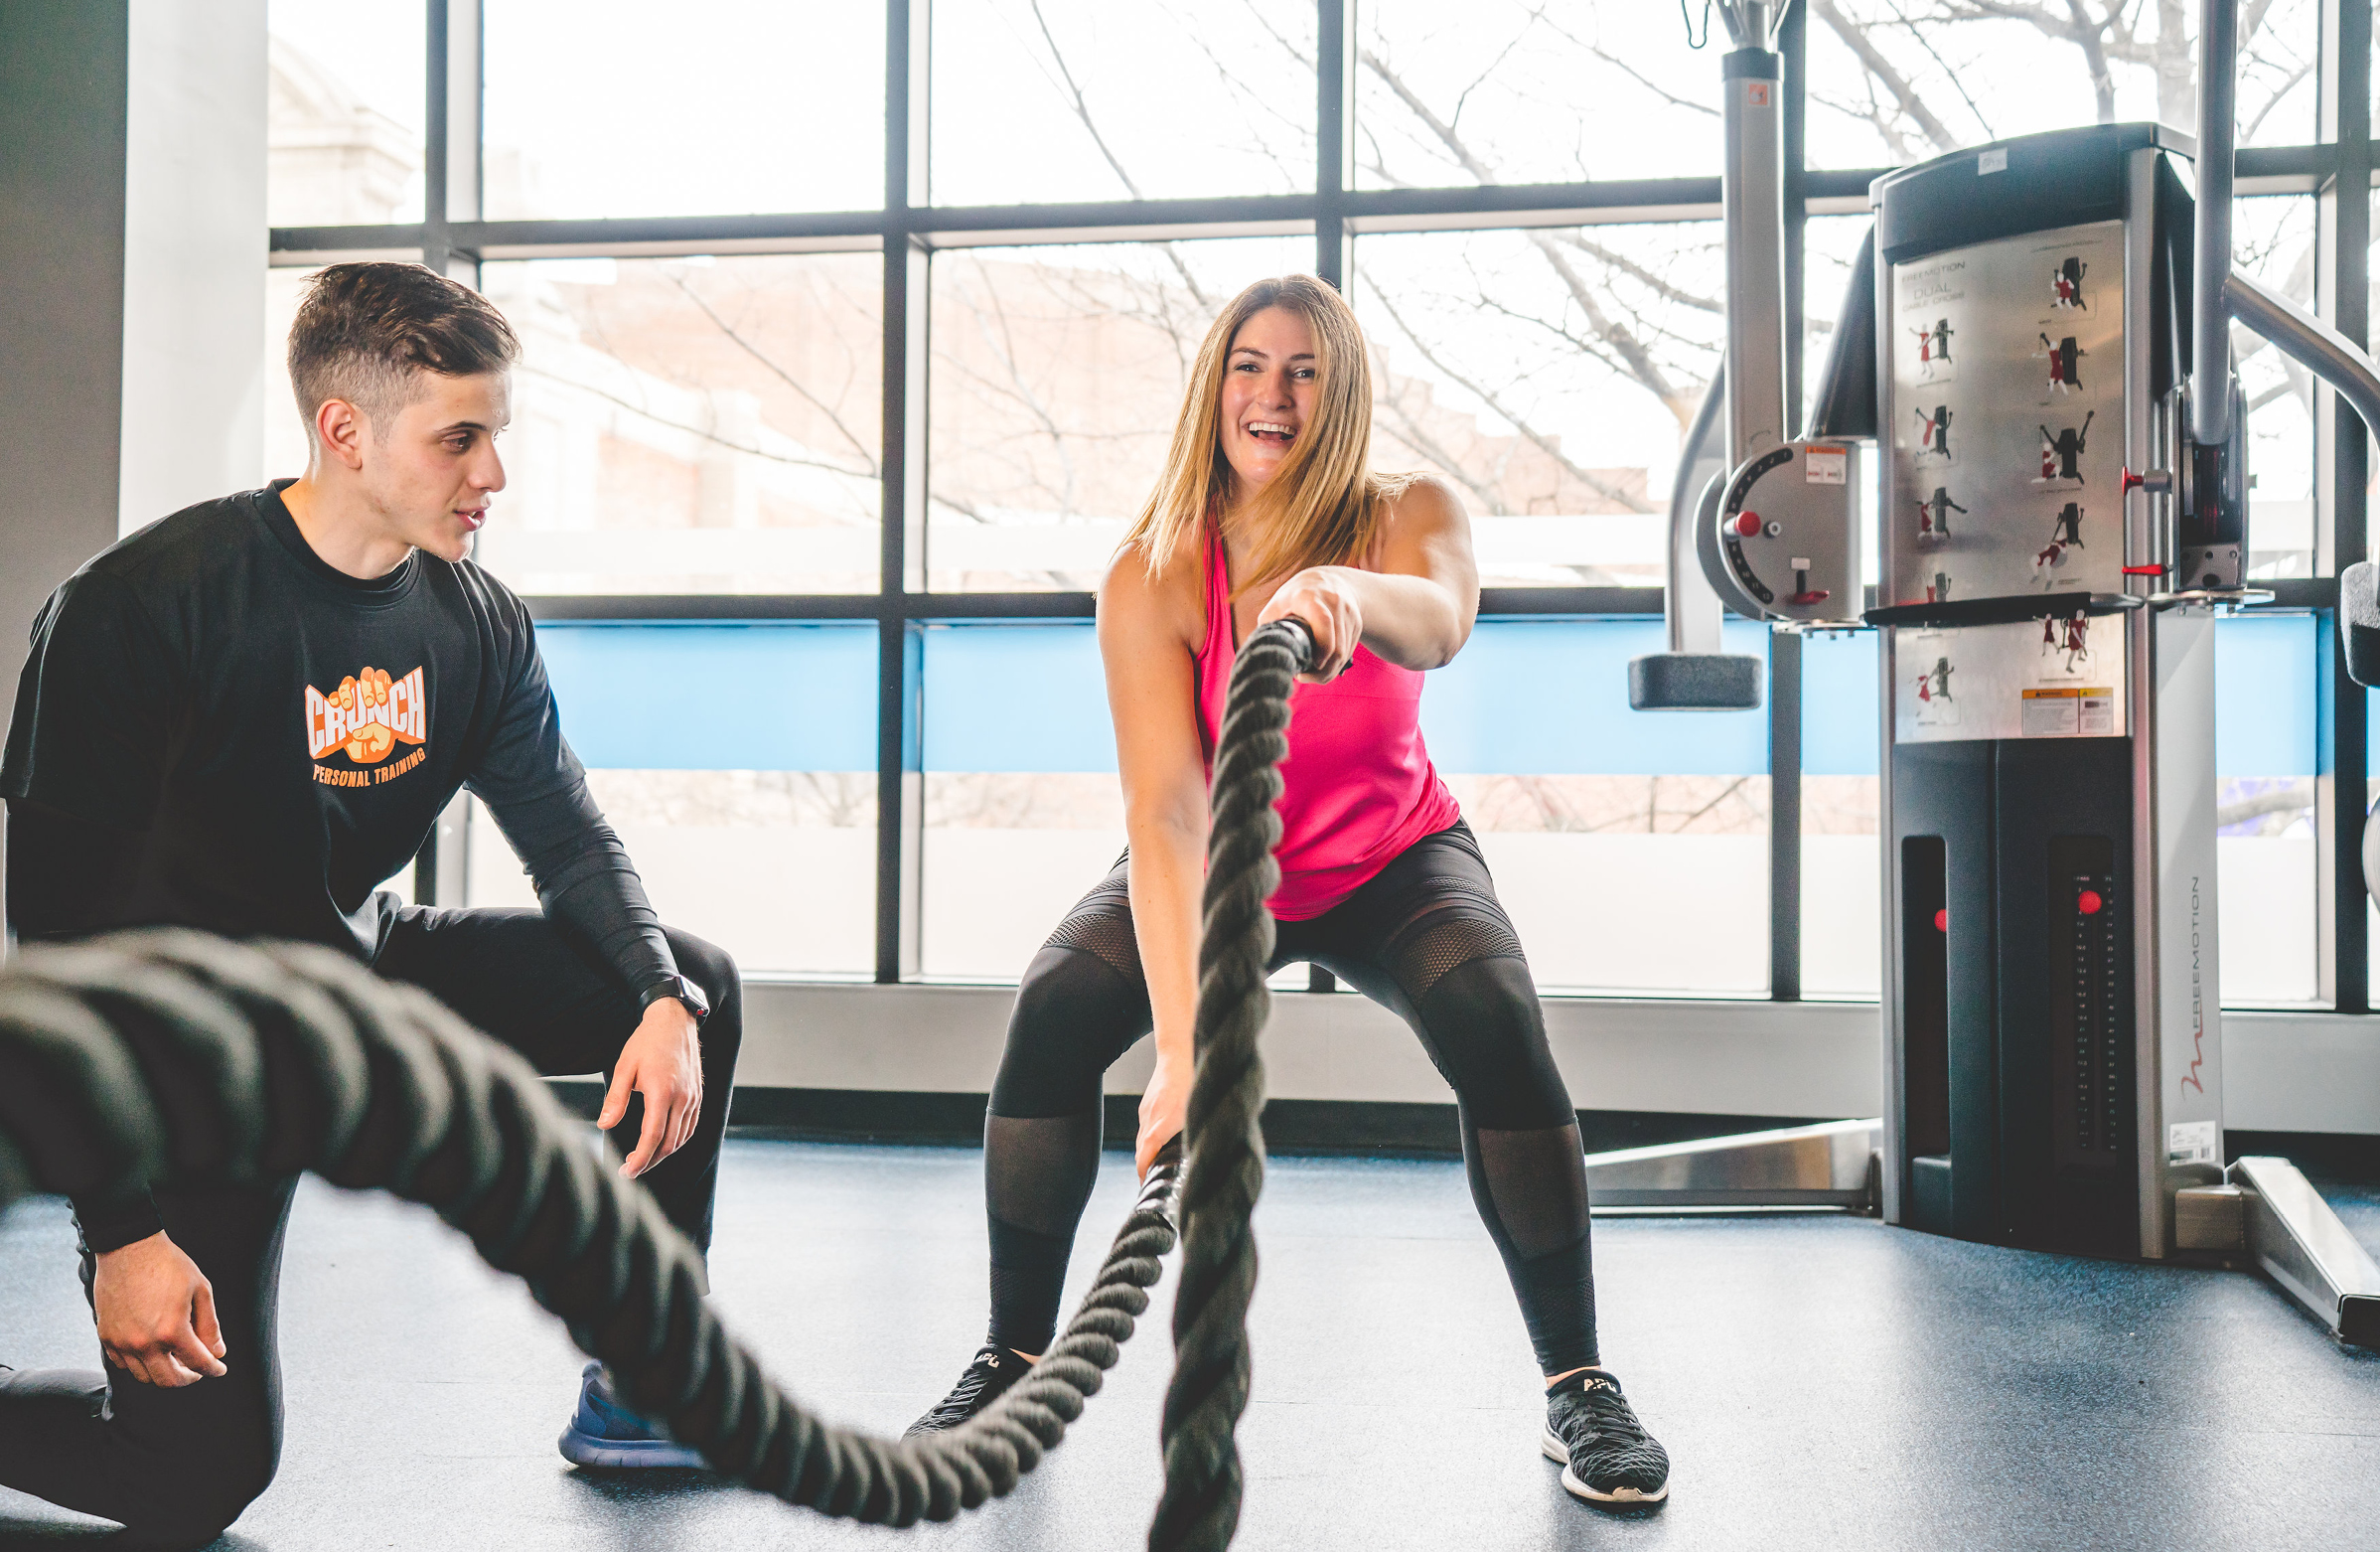 greenpoint crunch fitness